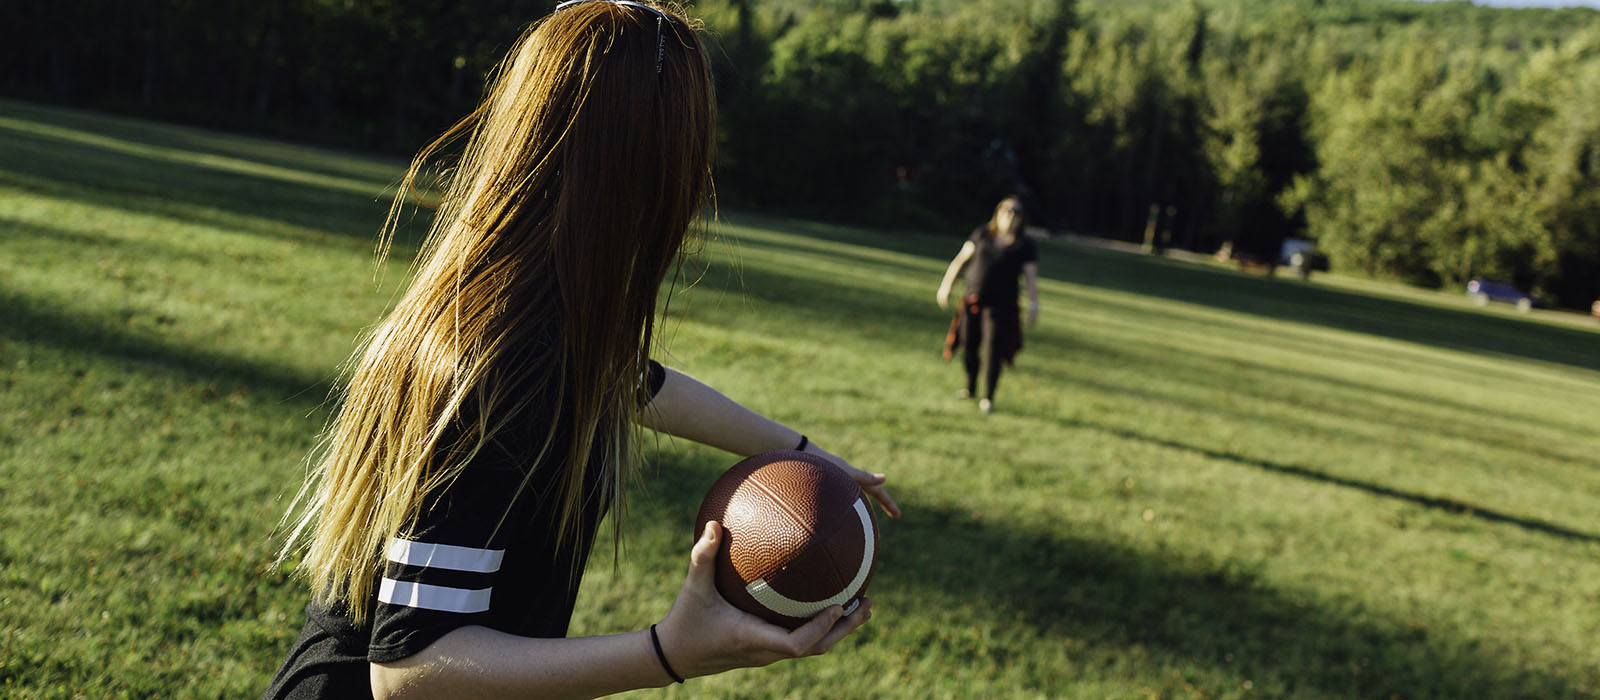 Girl throwing a football in a park